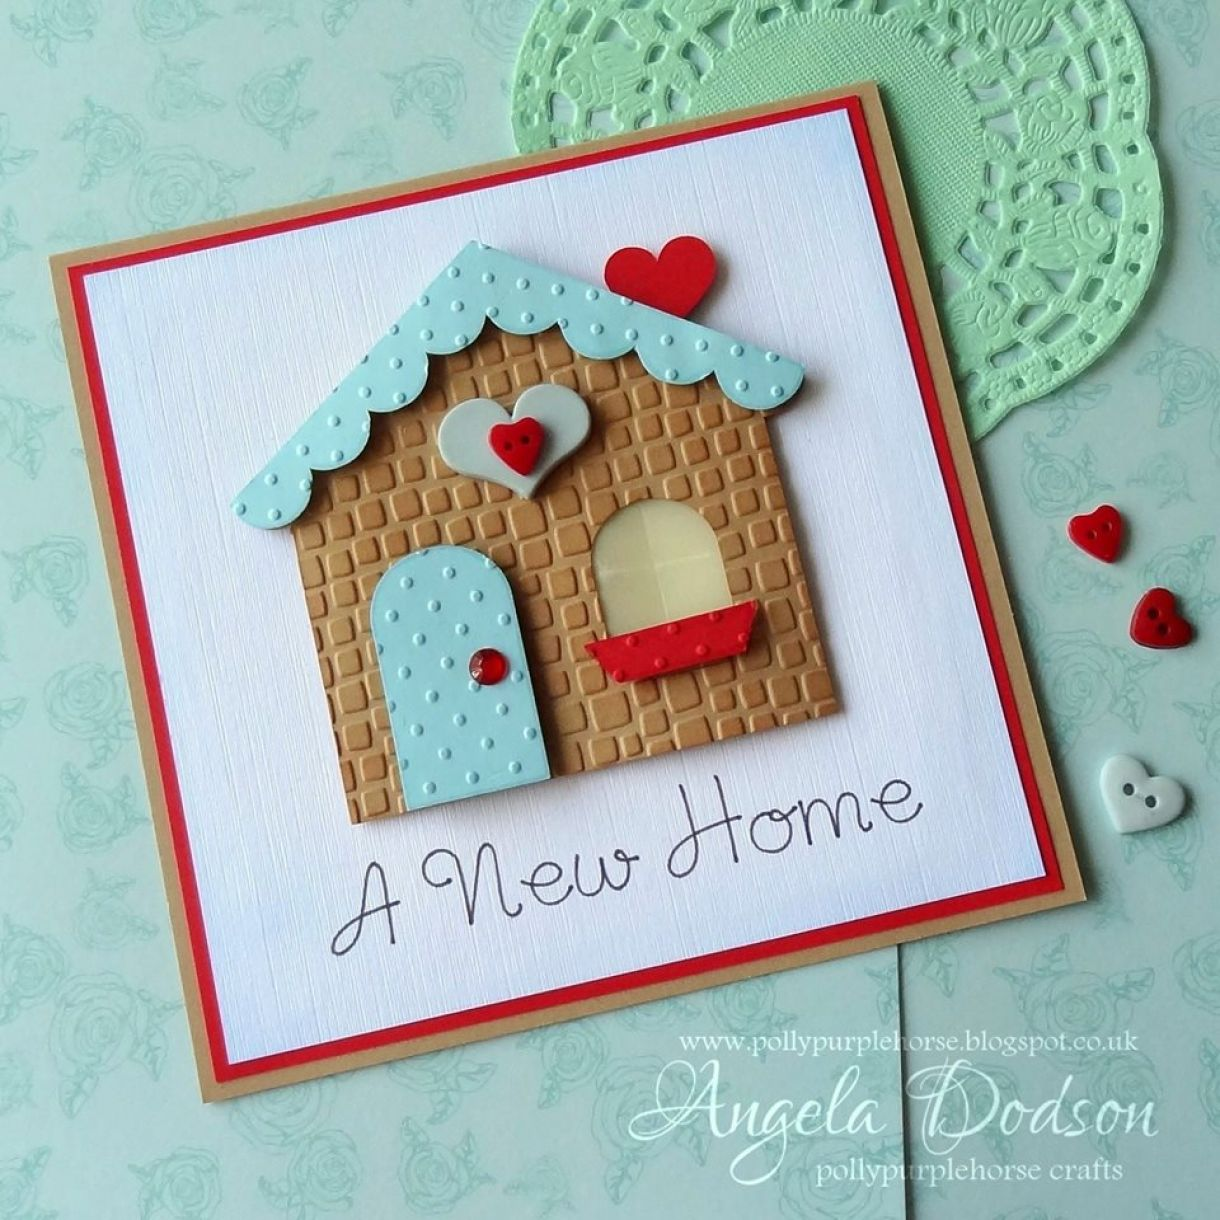 Good Card Making Ideas For Moving House Part - 14: New Home Card Inspiration